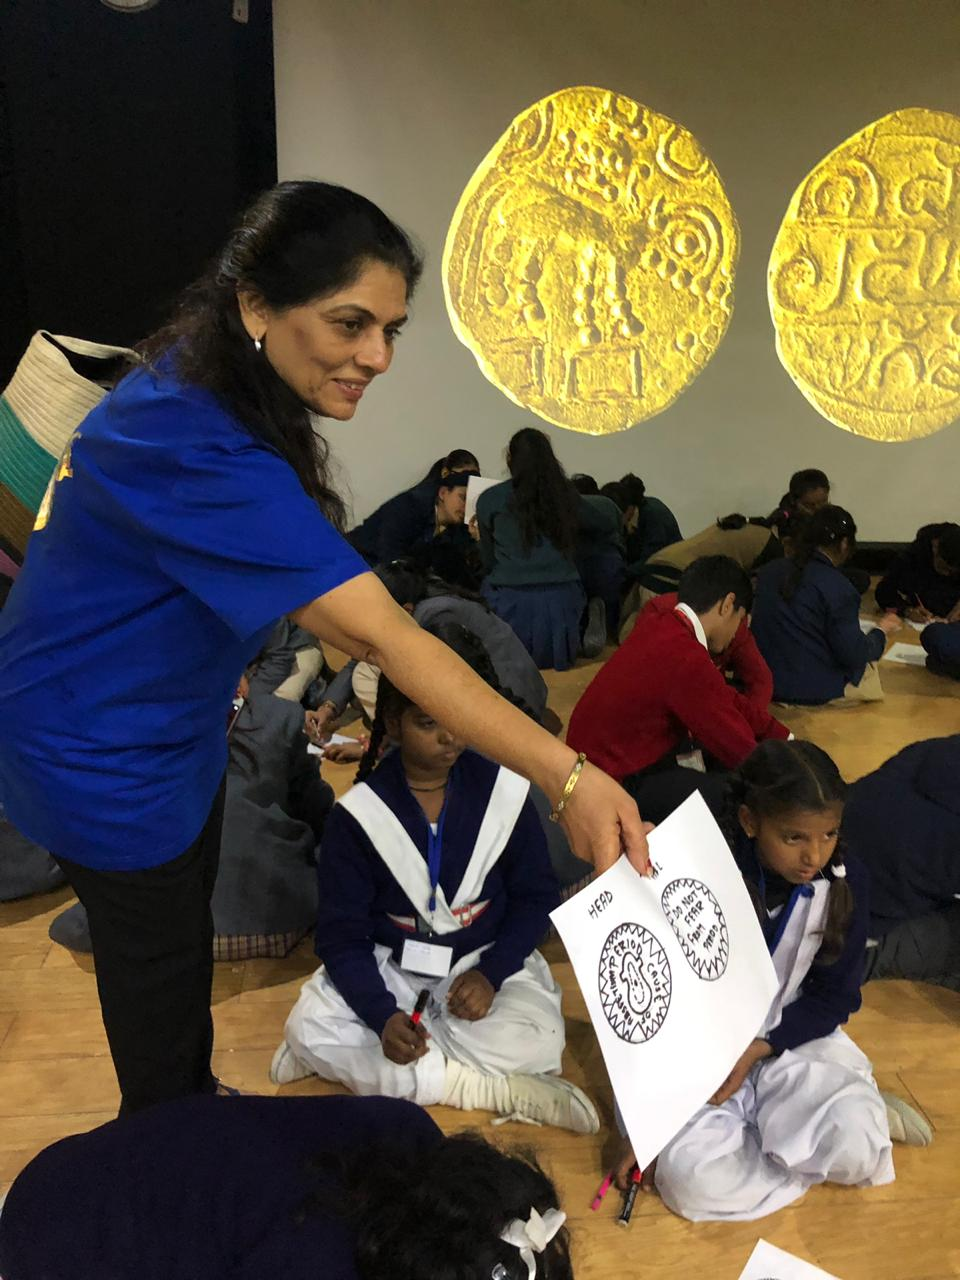 Numismatics workshop for City As Lab - For schools, Mughal Coins